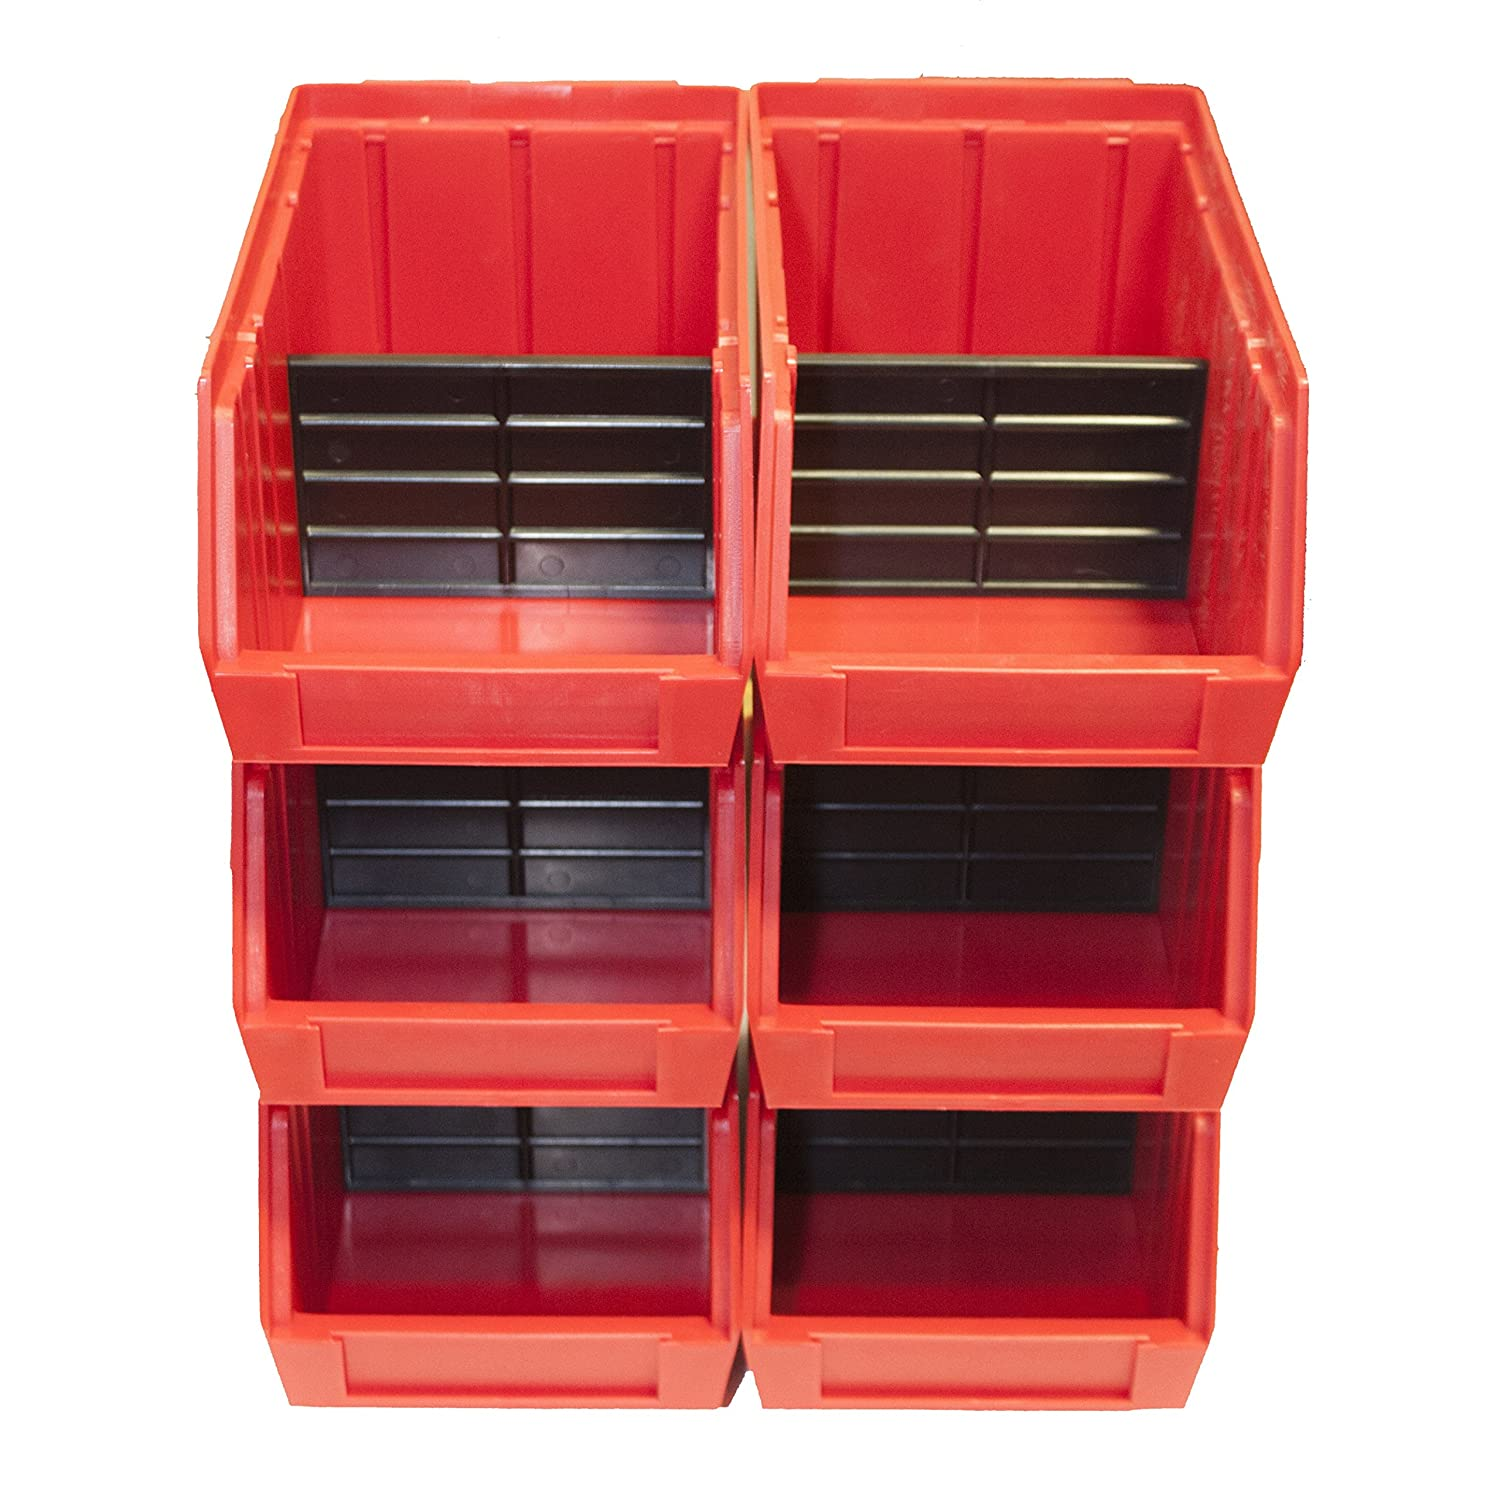 Maxtech 76025 PB9 Parts Bin Master Carton (20 Piece), Red Maxtech Consumer Products Limited